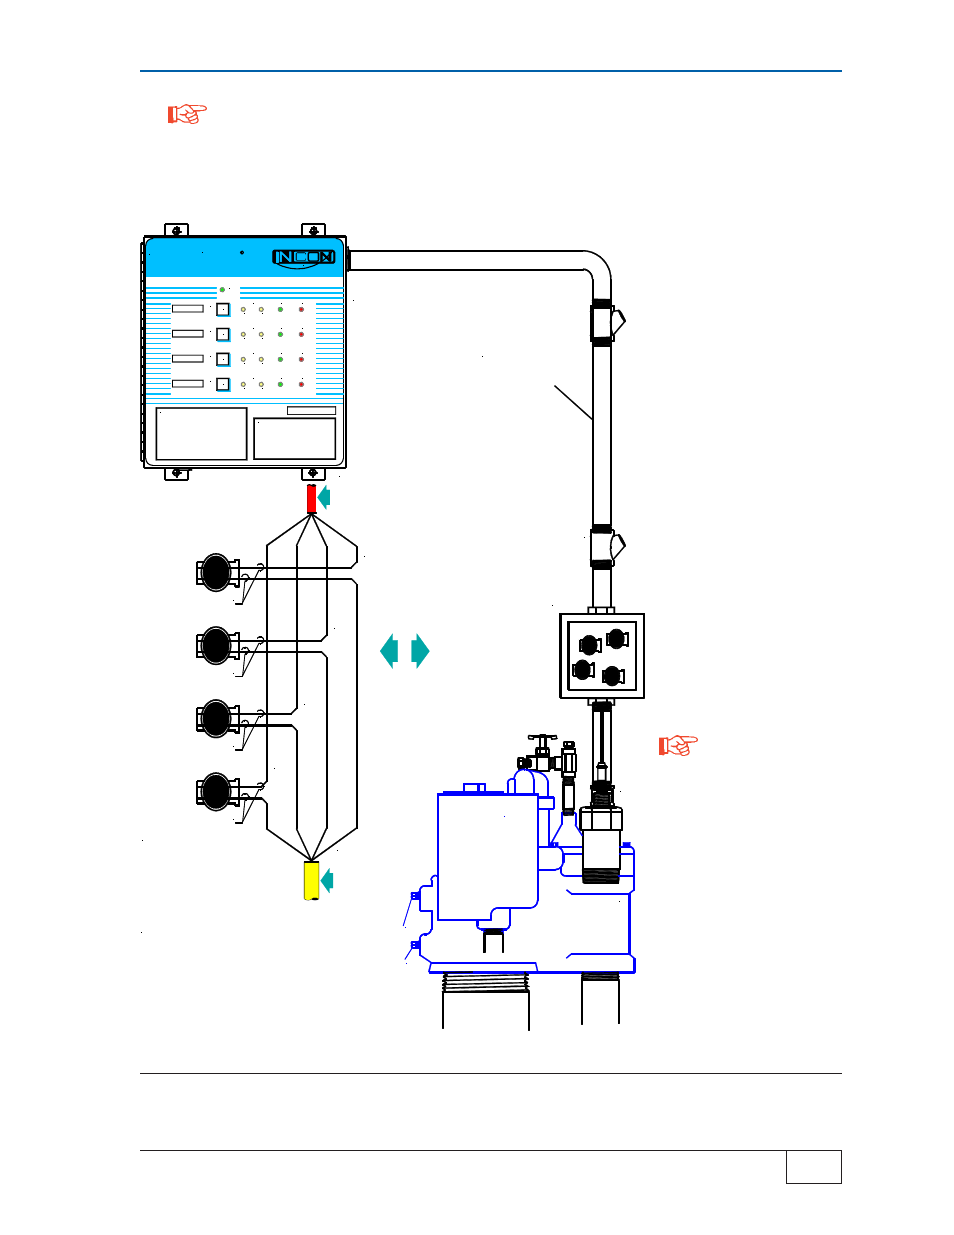 Electrical Installation Wiring Page 3 Ls300 Users Guide Re D Intrinsically Safe Franklin Fueling Systems Ts Autolearn Pressure Based Electronic Line Leak